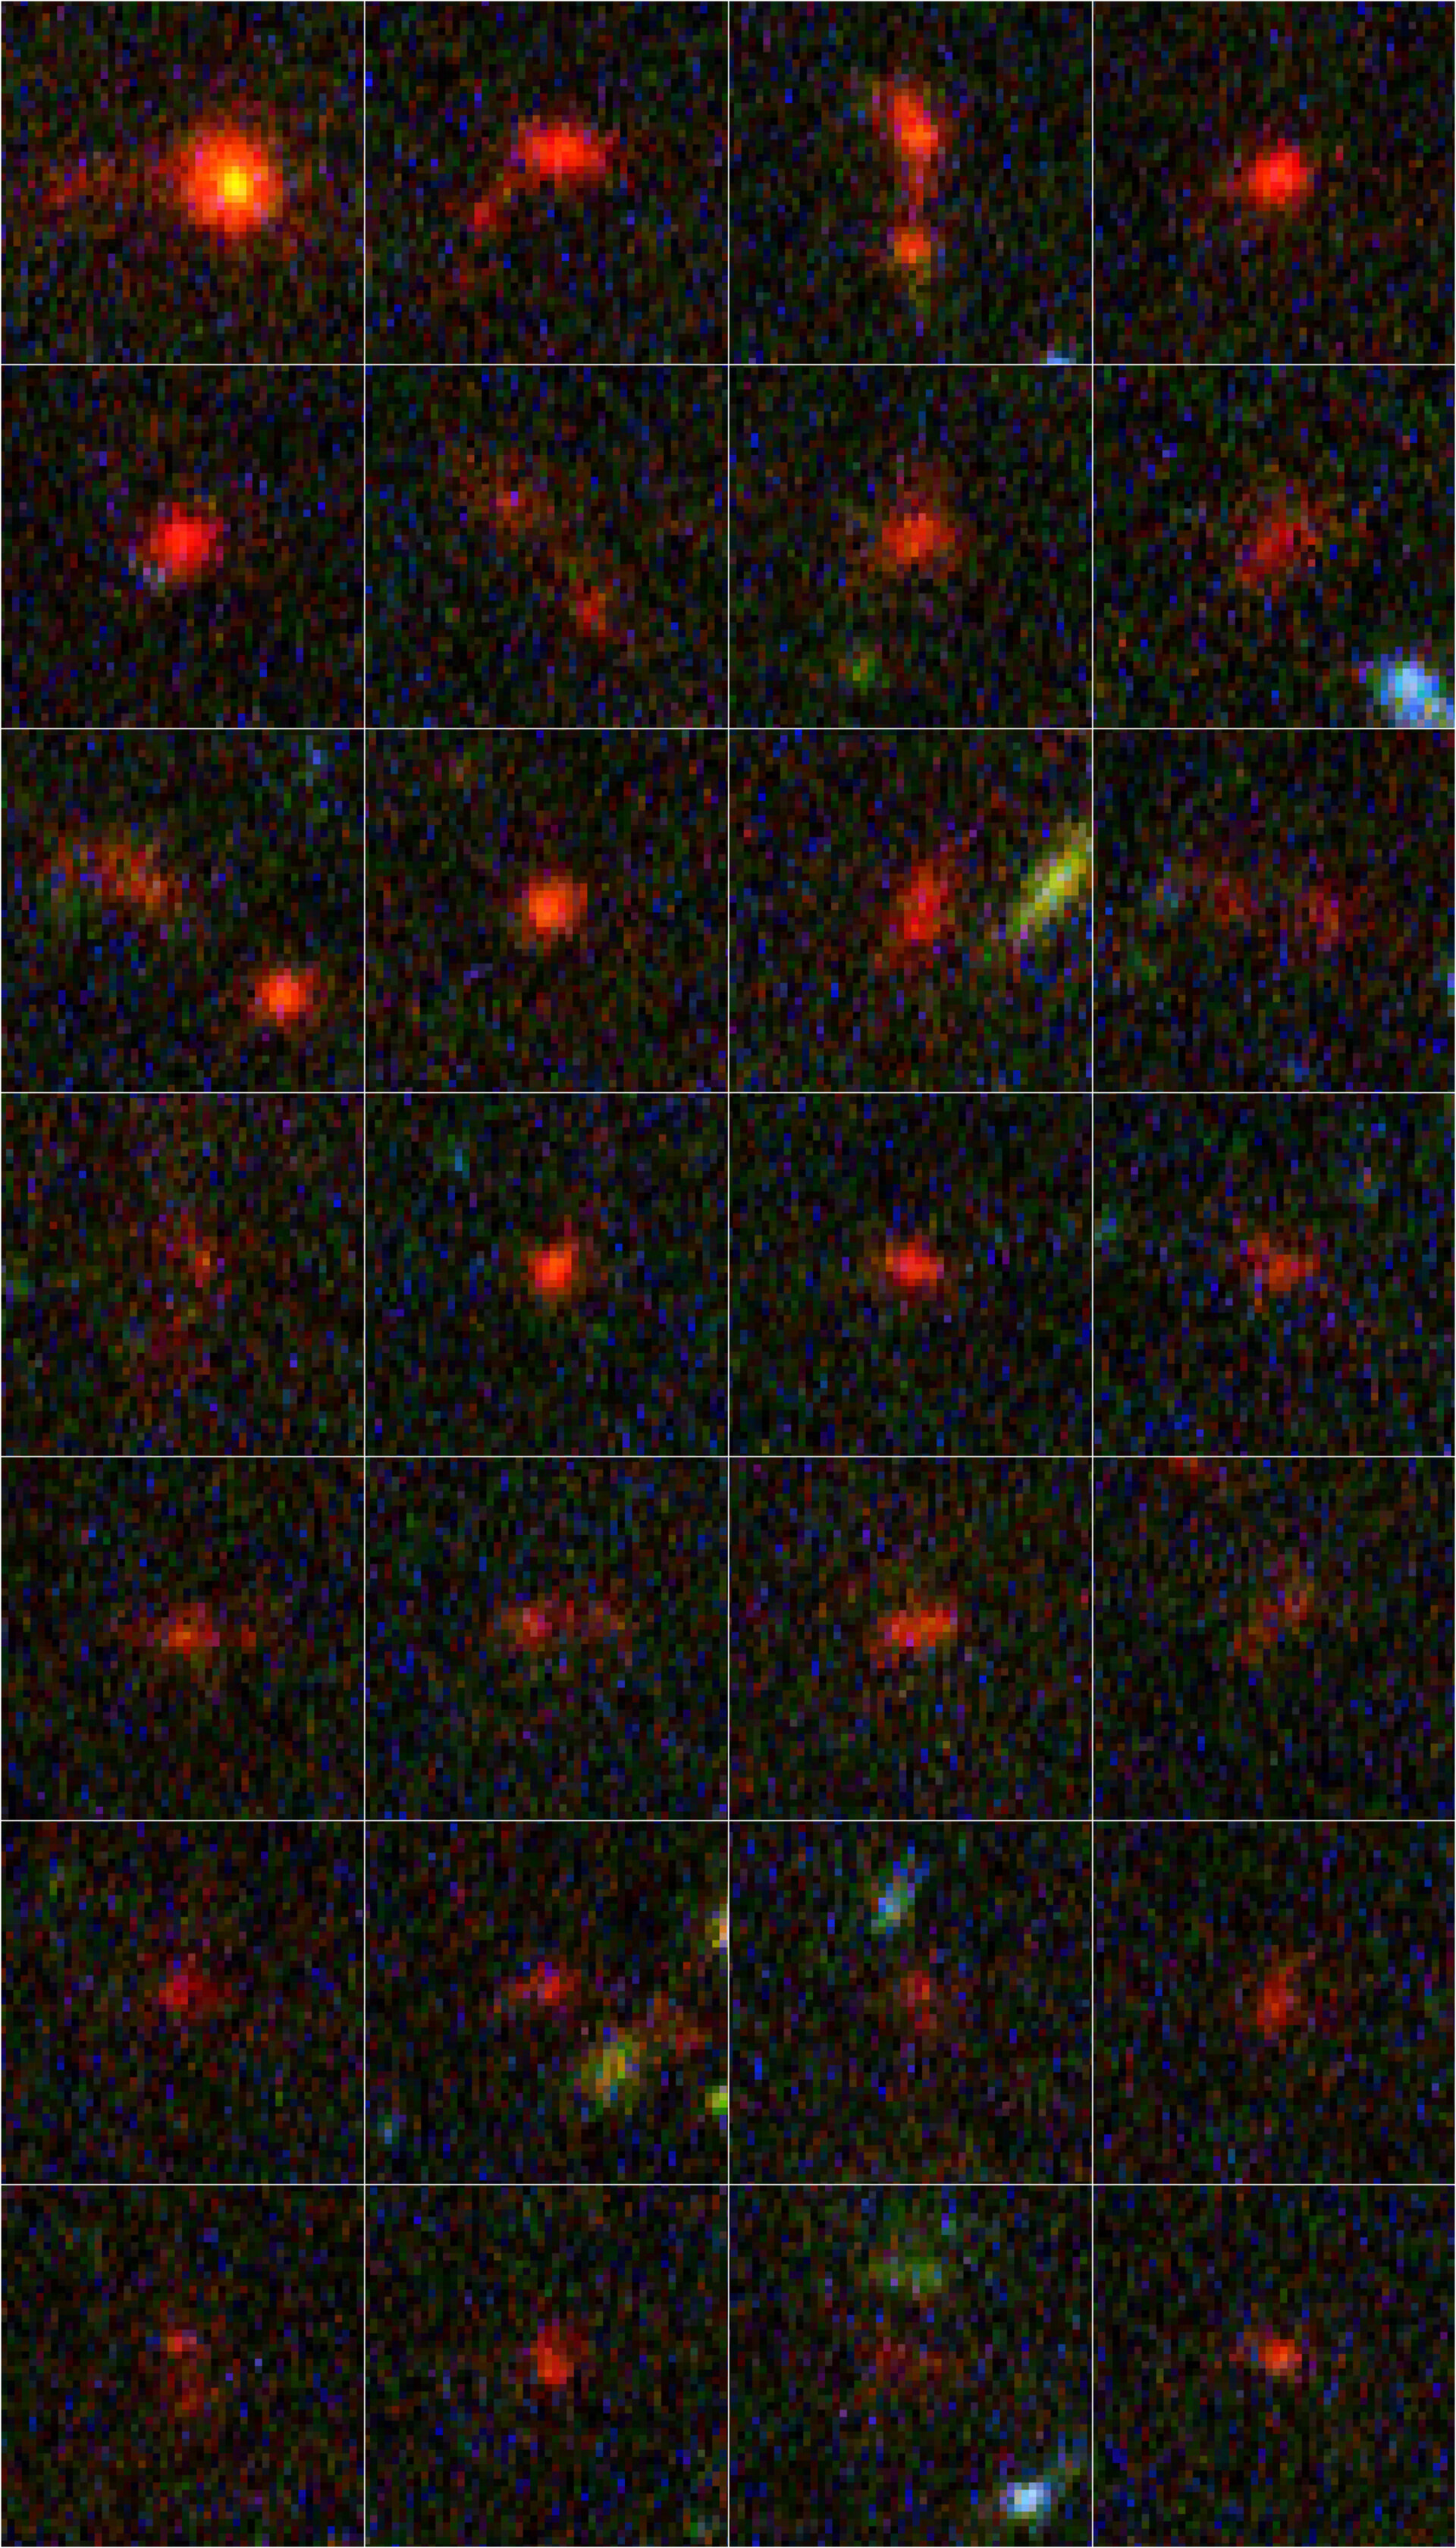 Details of individual distant galaxies